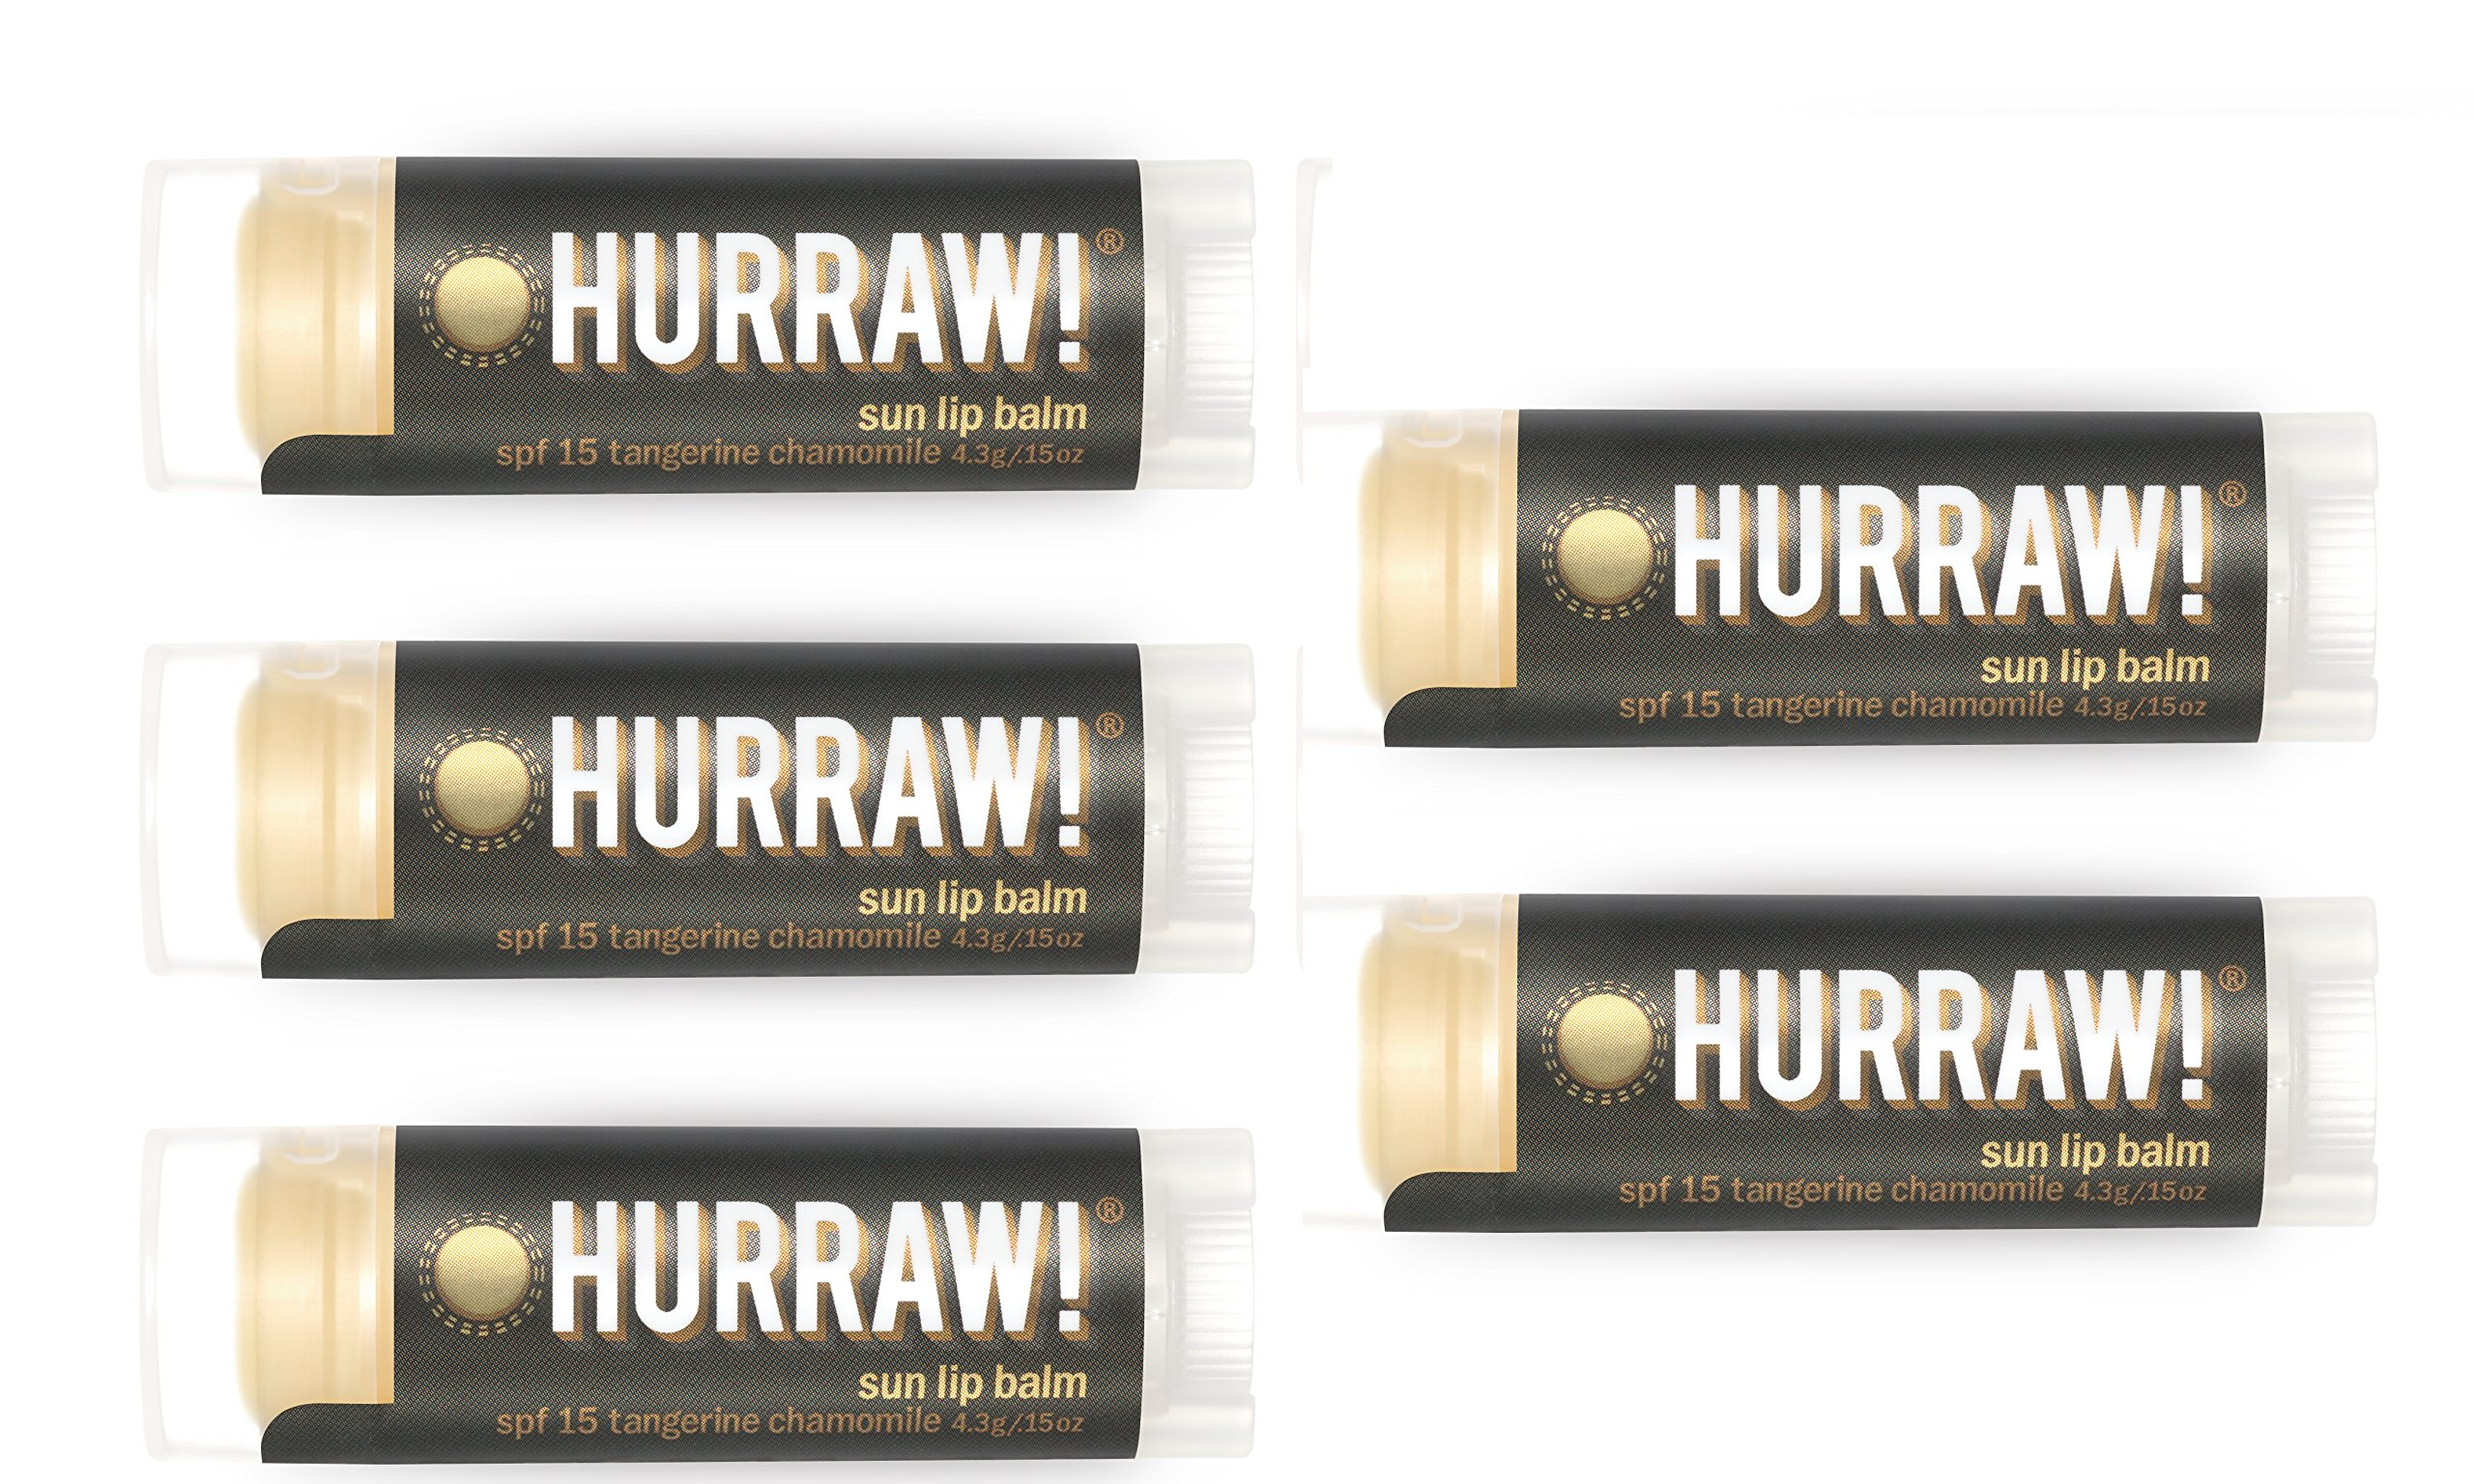 Hurraw Sun Protection (SPF 15, Tangerine, Chamomile) Lip Balm, 5 Pack by Hurraw!